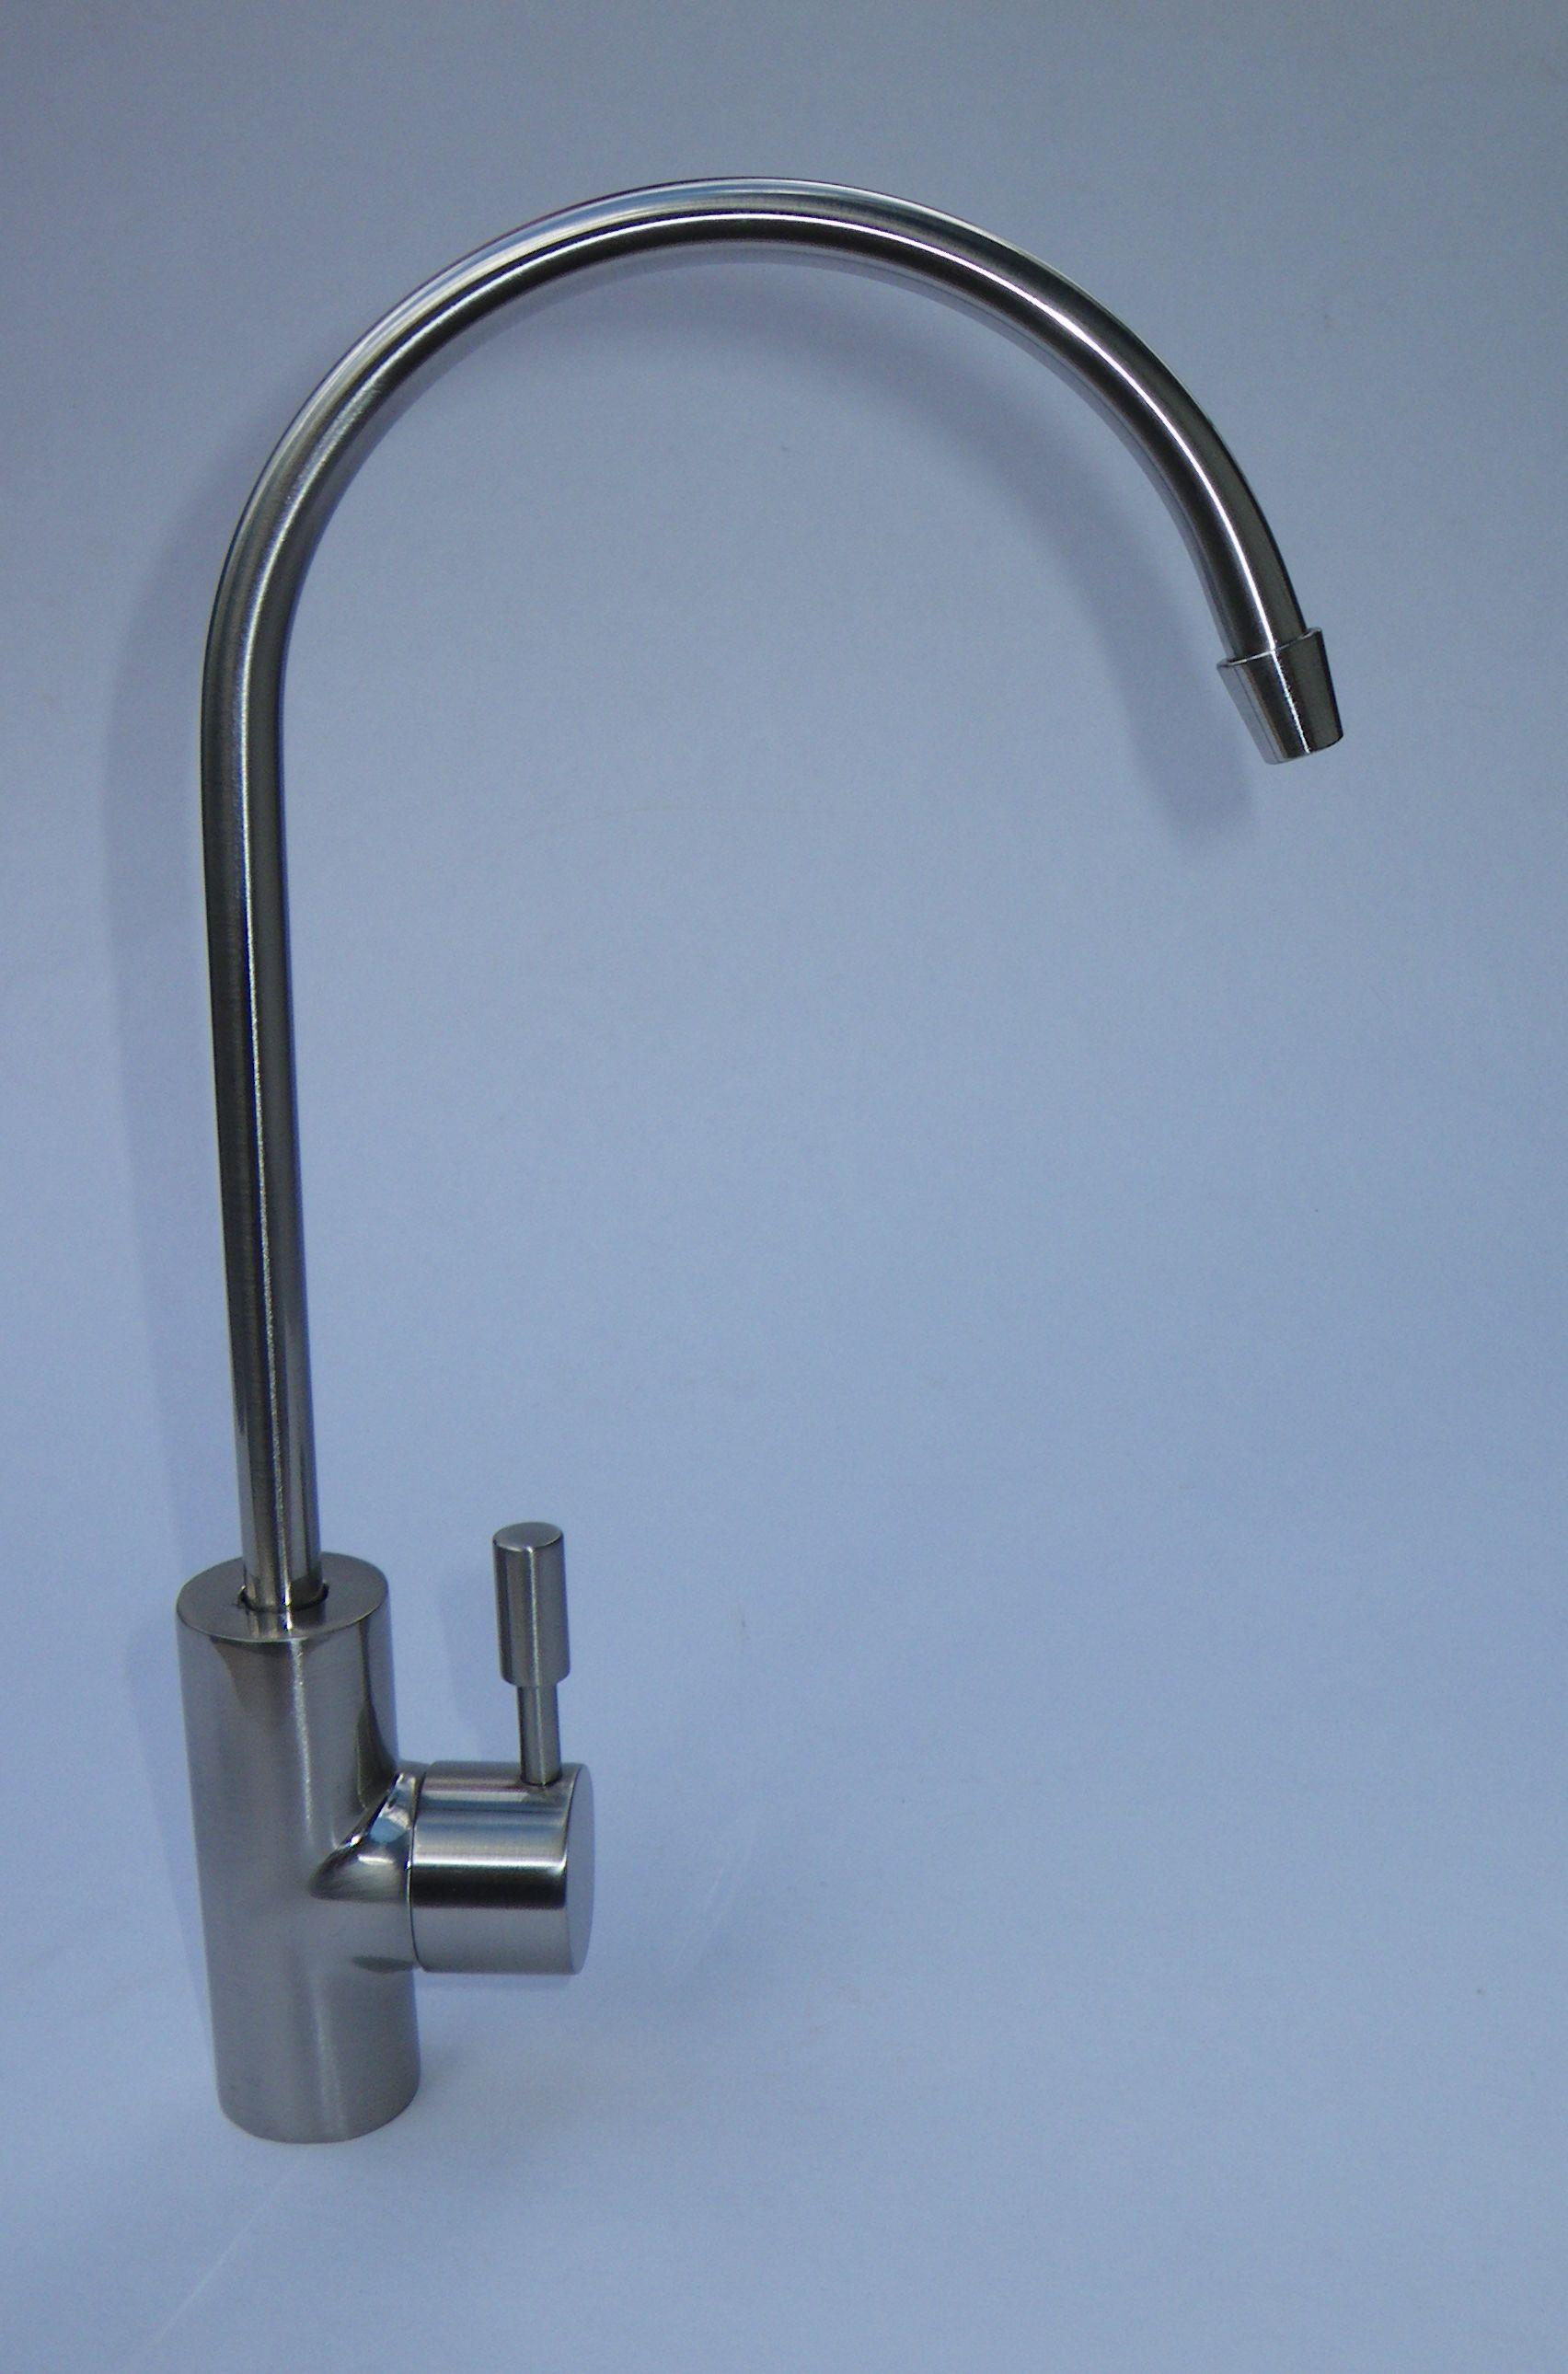 Fancy Bathtub Faucet Filter Photo - Faucet Collections - thoughtfire ...